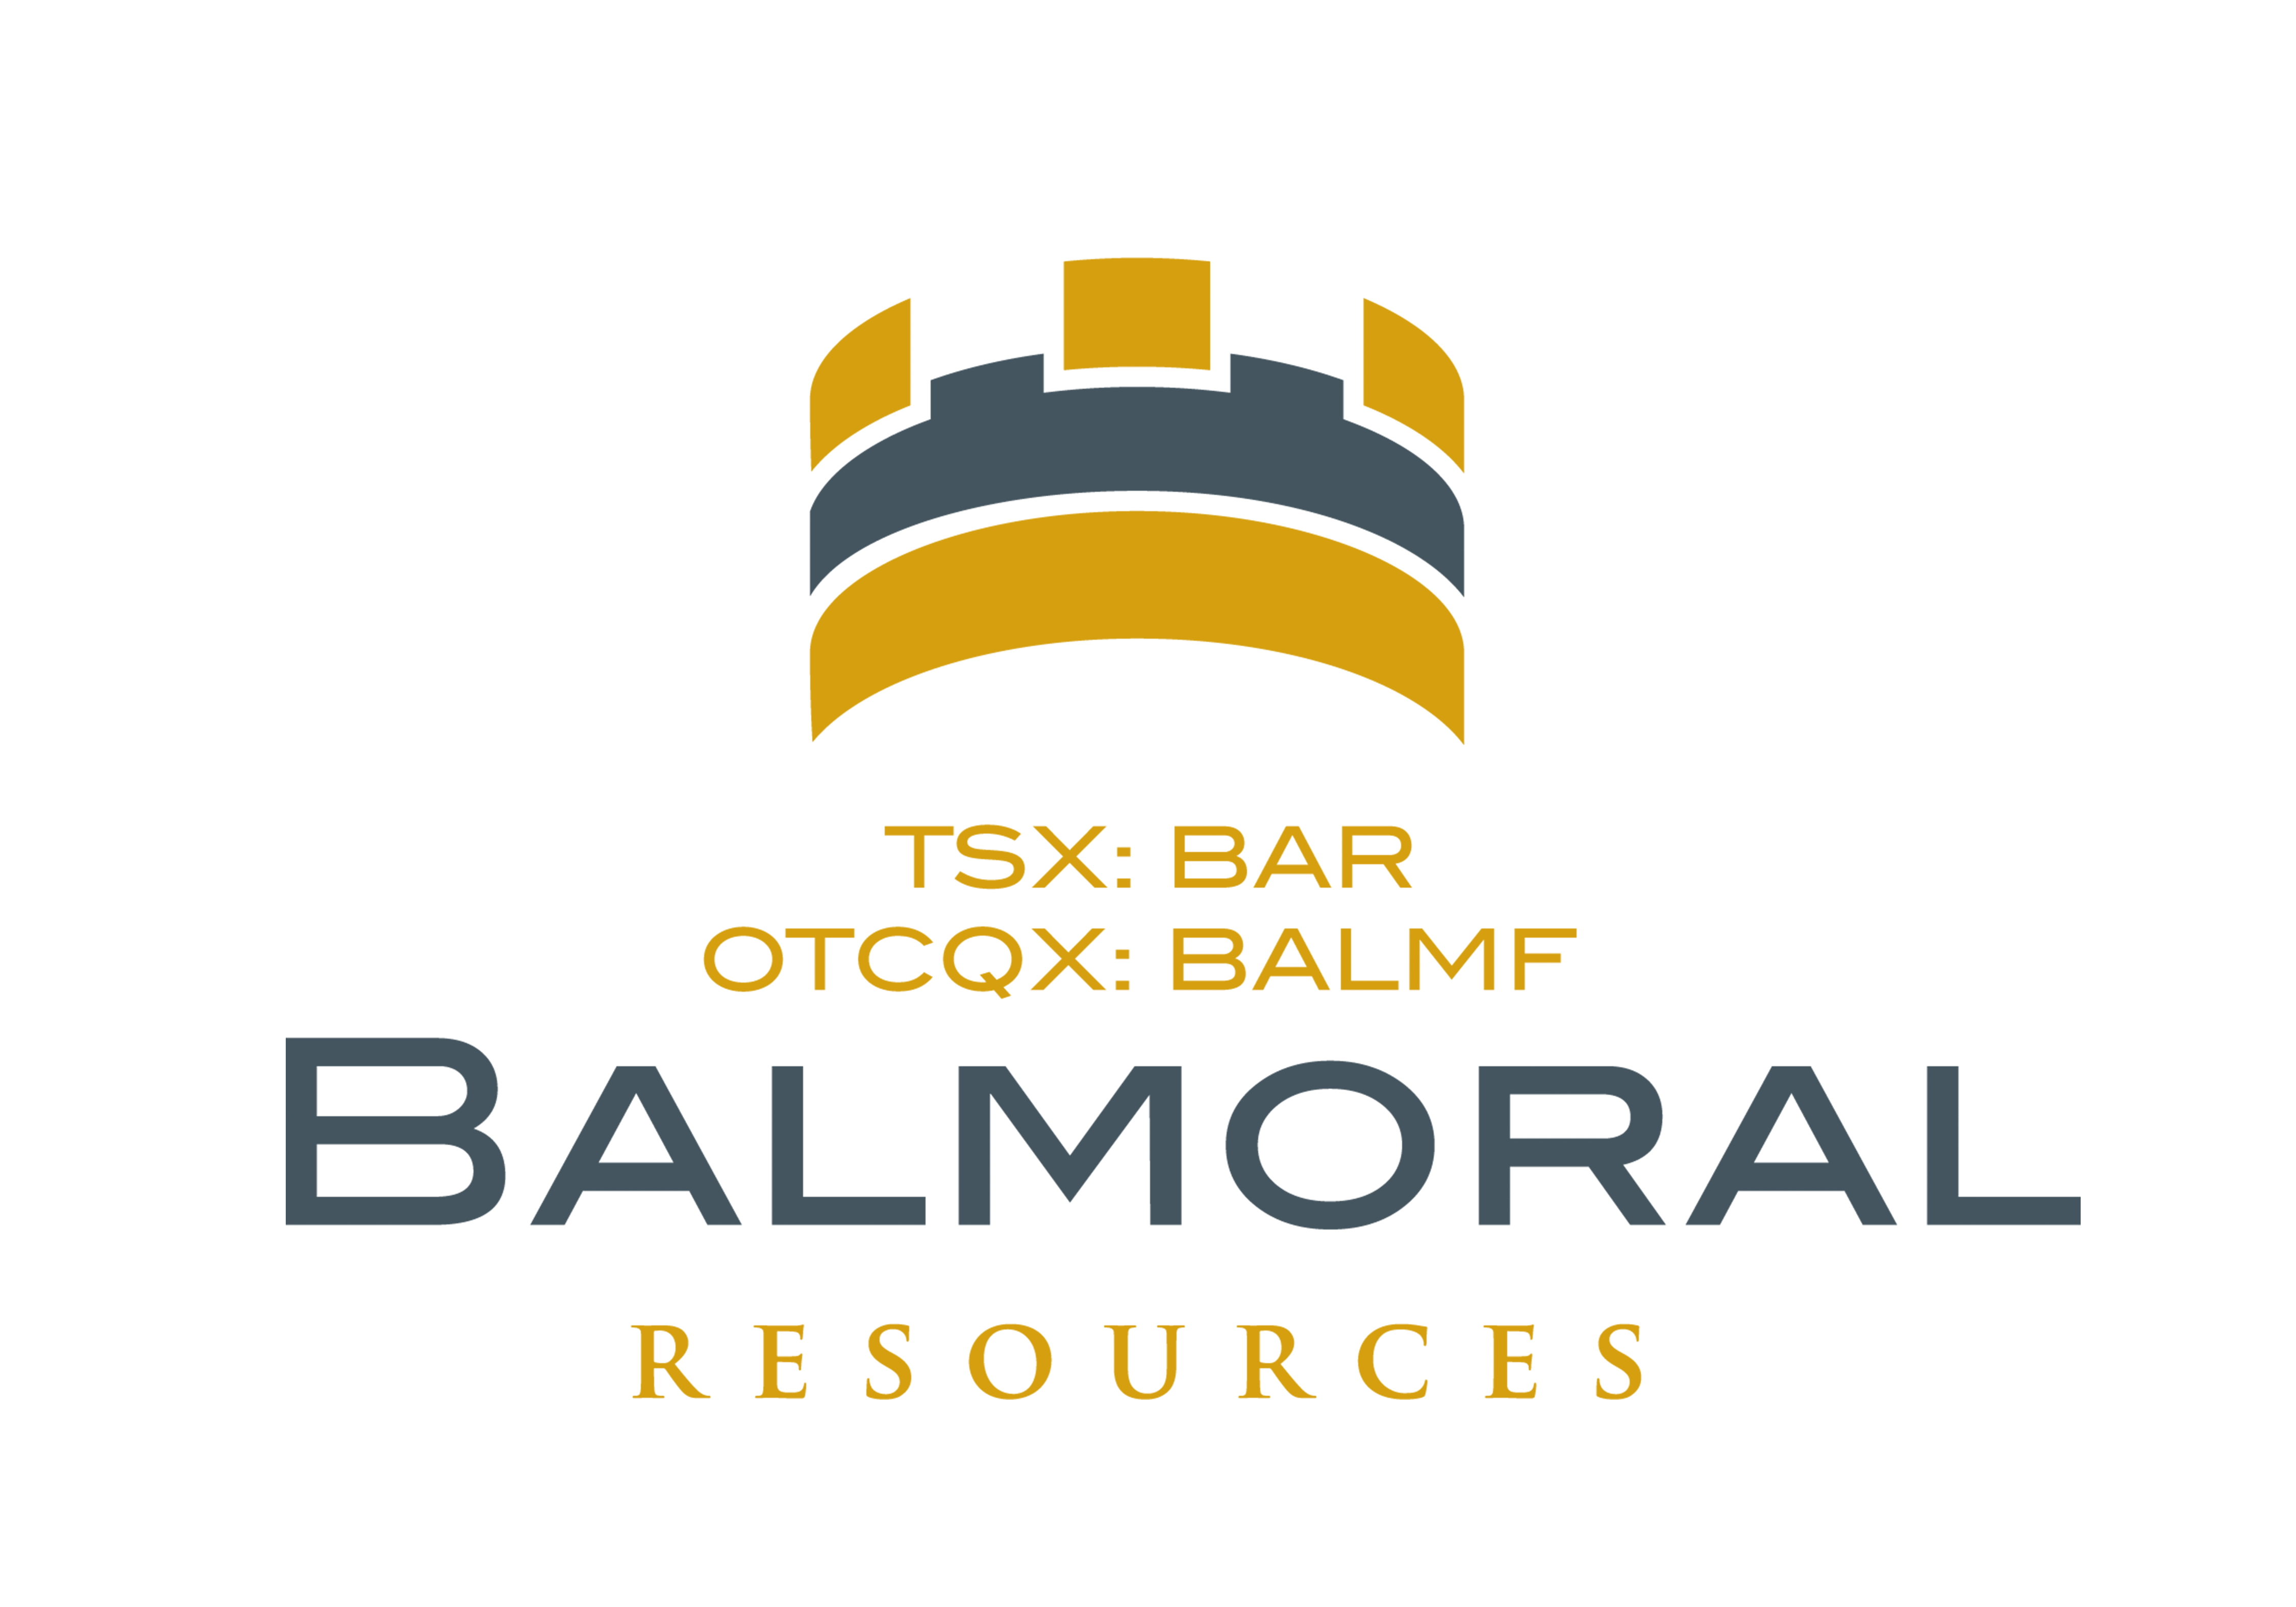 BALMORAL TEMPORARILY SUSPENDS EXPLORATION ACTIVITIES IN QUEBEC AND ONTARIO IN RESPONSE TO COVID-19 ORDERS